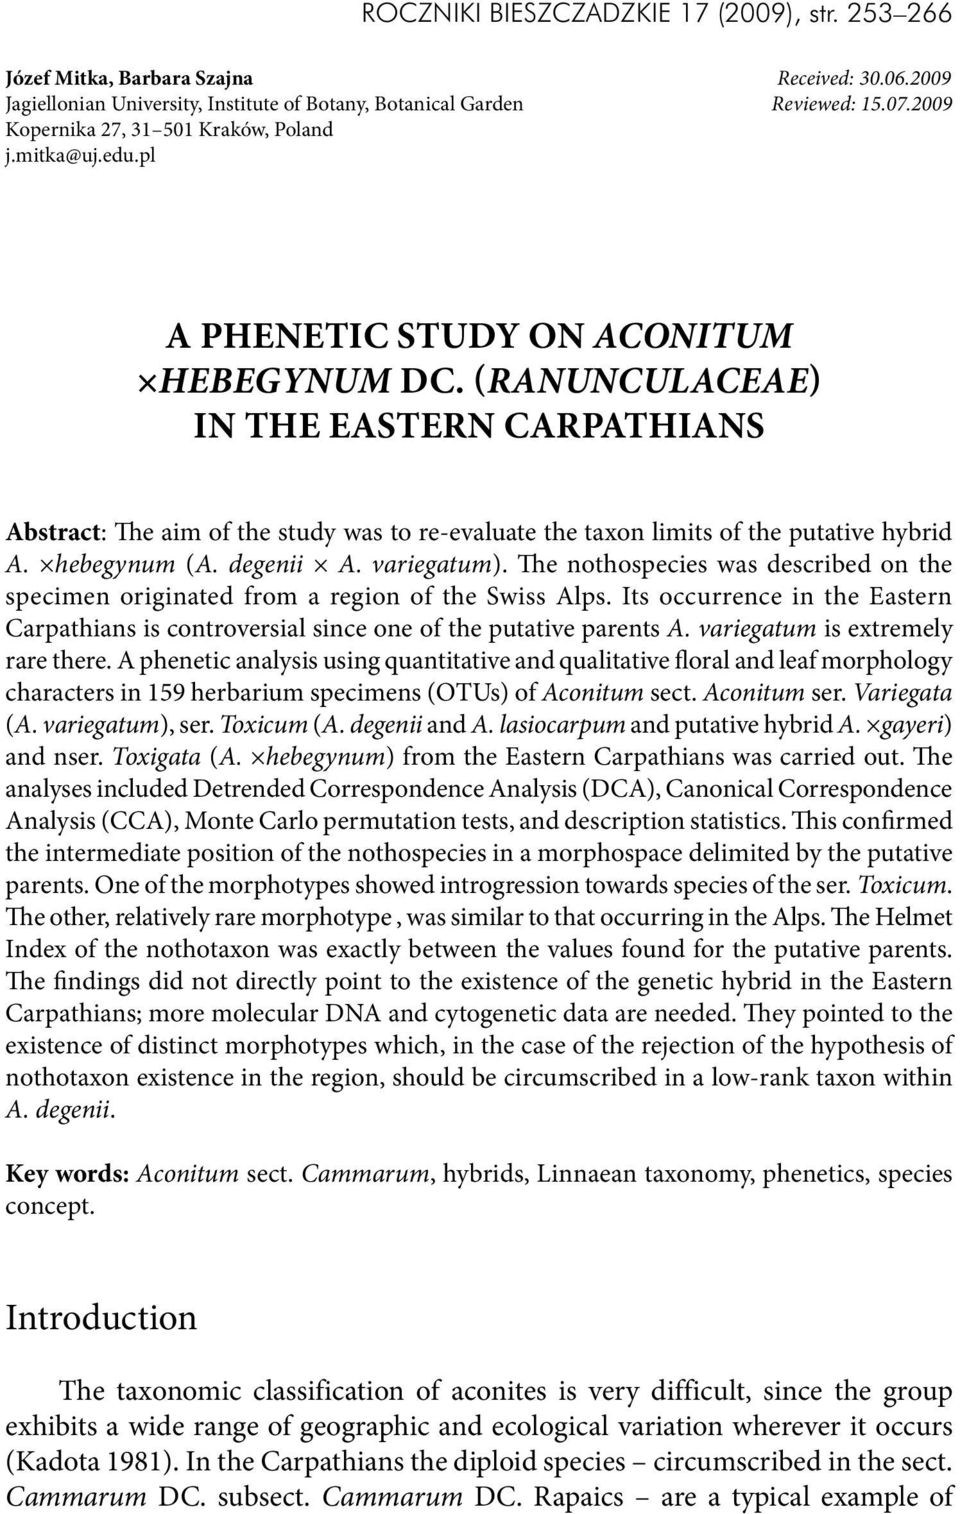 (Ranunculaceae) in the Eastern Carpathians Abstract: The aim of the study was to re-evaluate the taxon limits of the putative hybrid A. hebegynum (A. degenii A. variegatum).